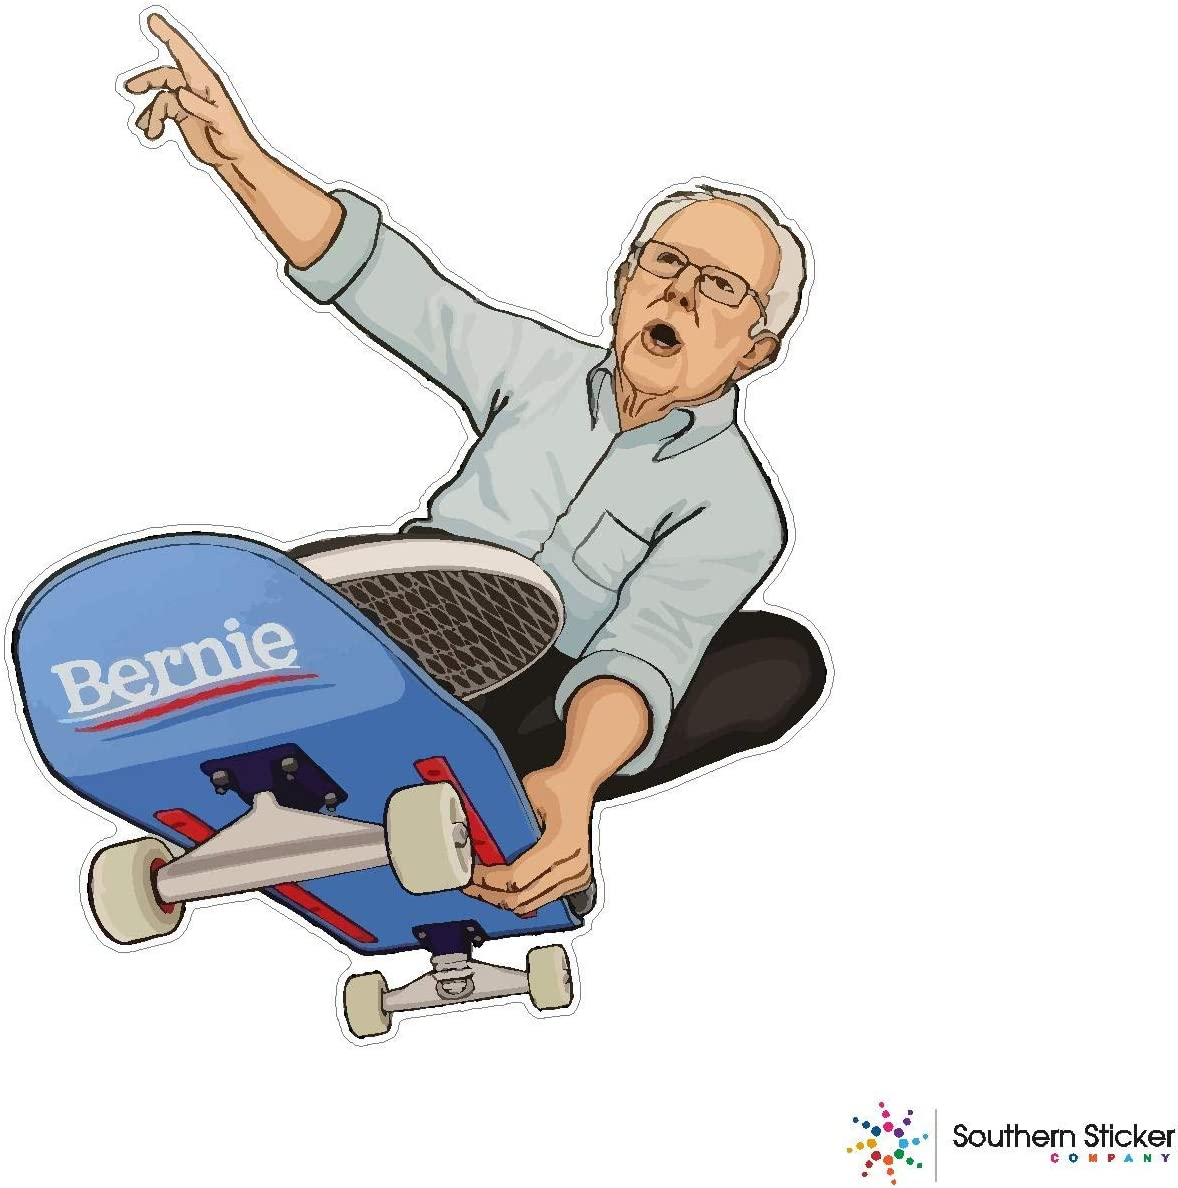 Bernie sanders skateboarding 3.9x4.5 inches Made and shipped in USA 2020 election USA flag funny stickers for pro union lunch box tool box symbol window travel jeep adventure wanderlust